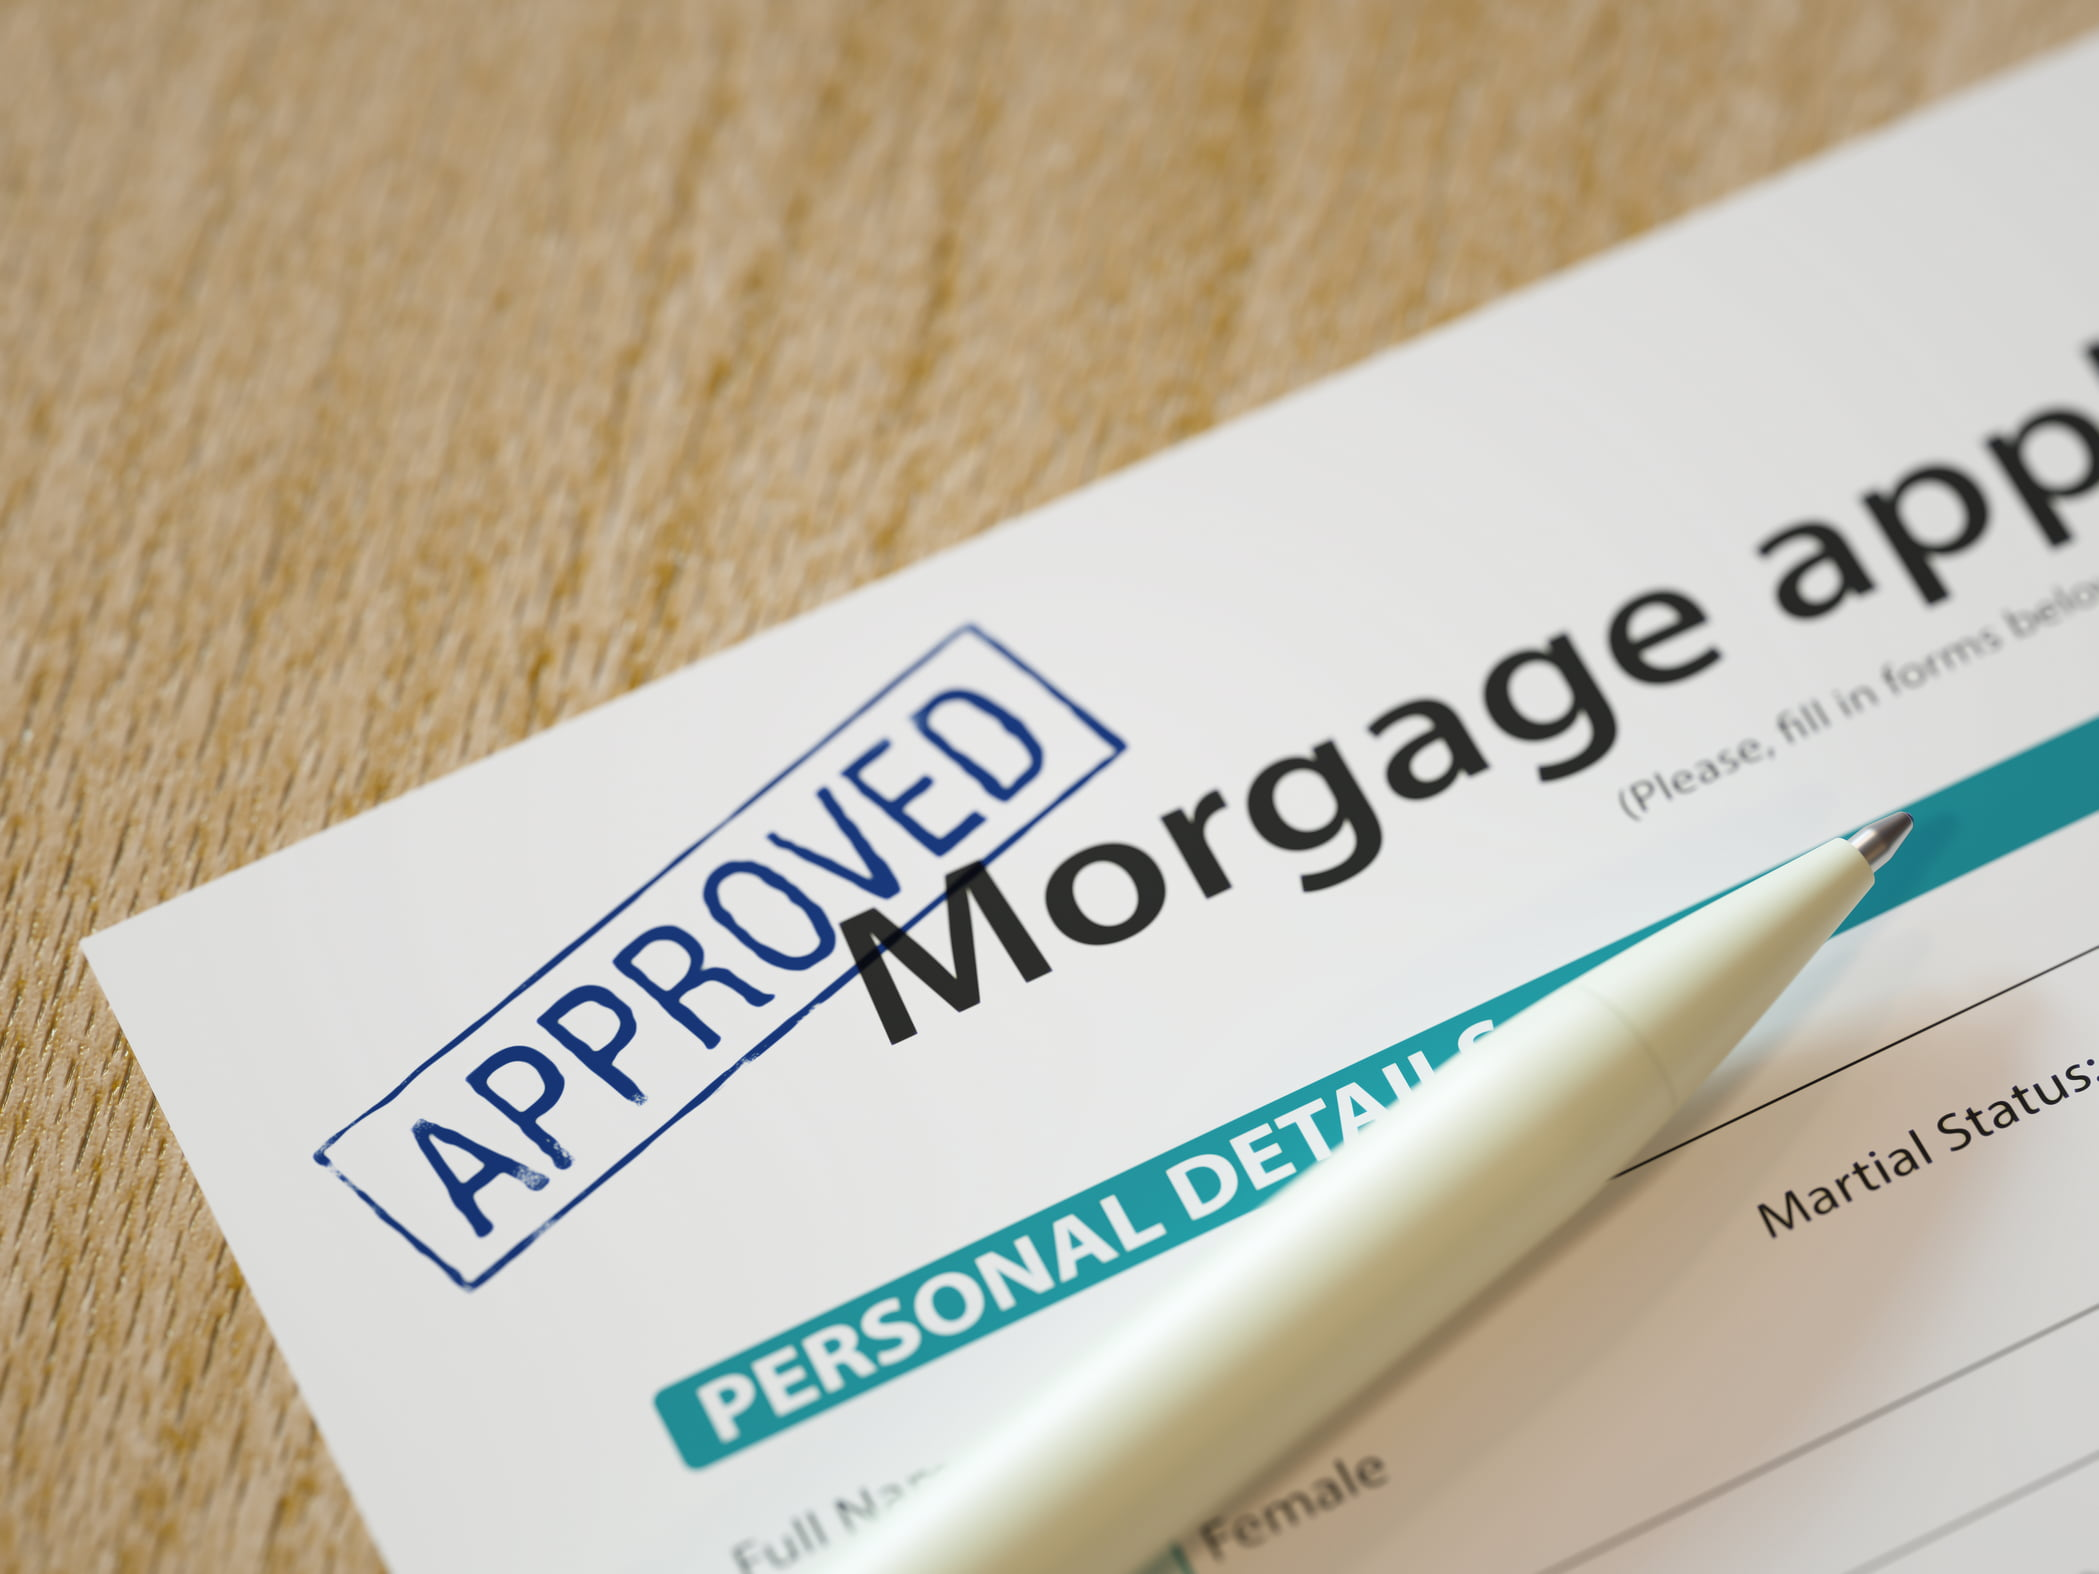 Top Three Things to Look for in a Mortgage